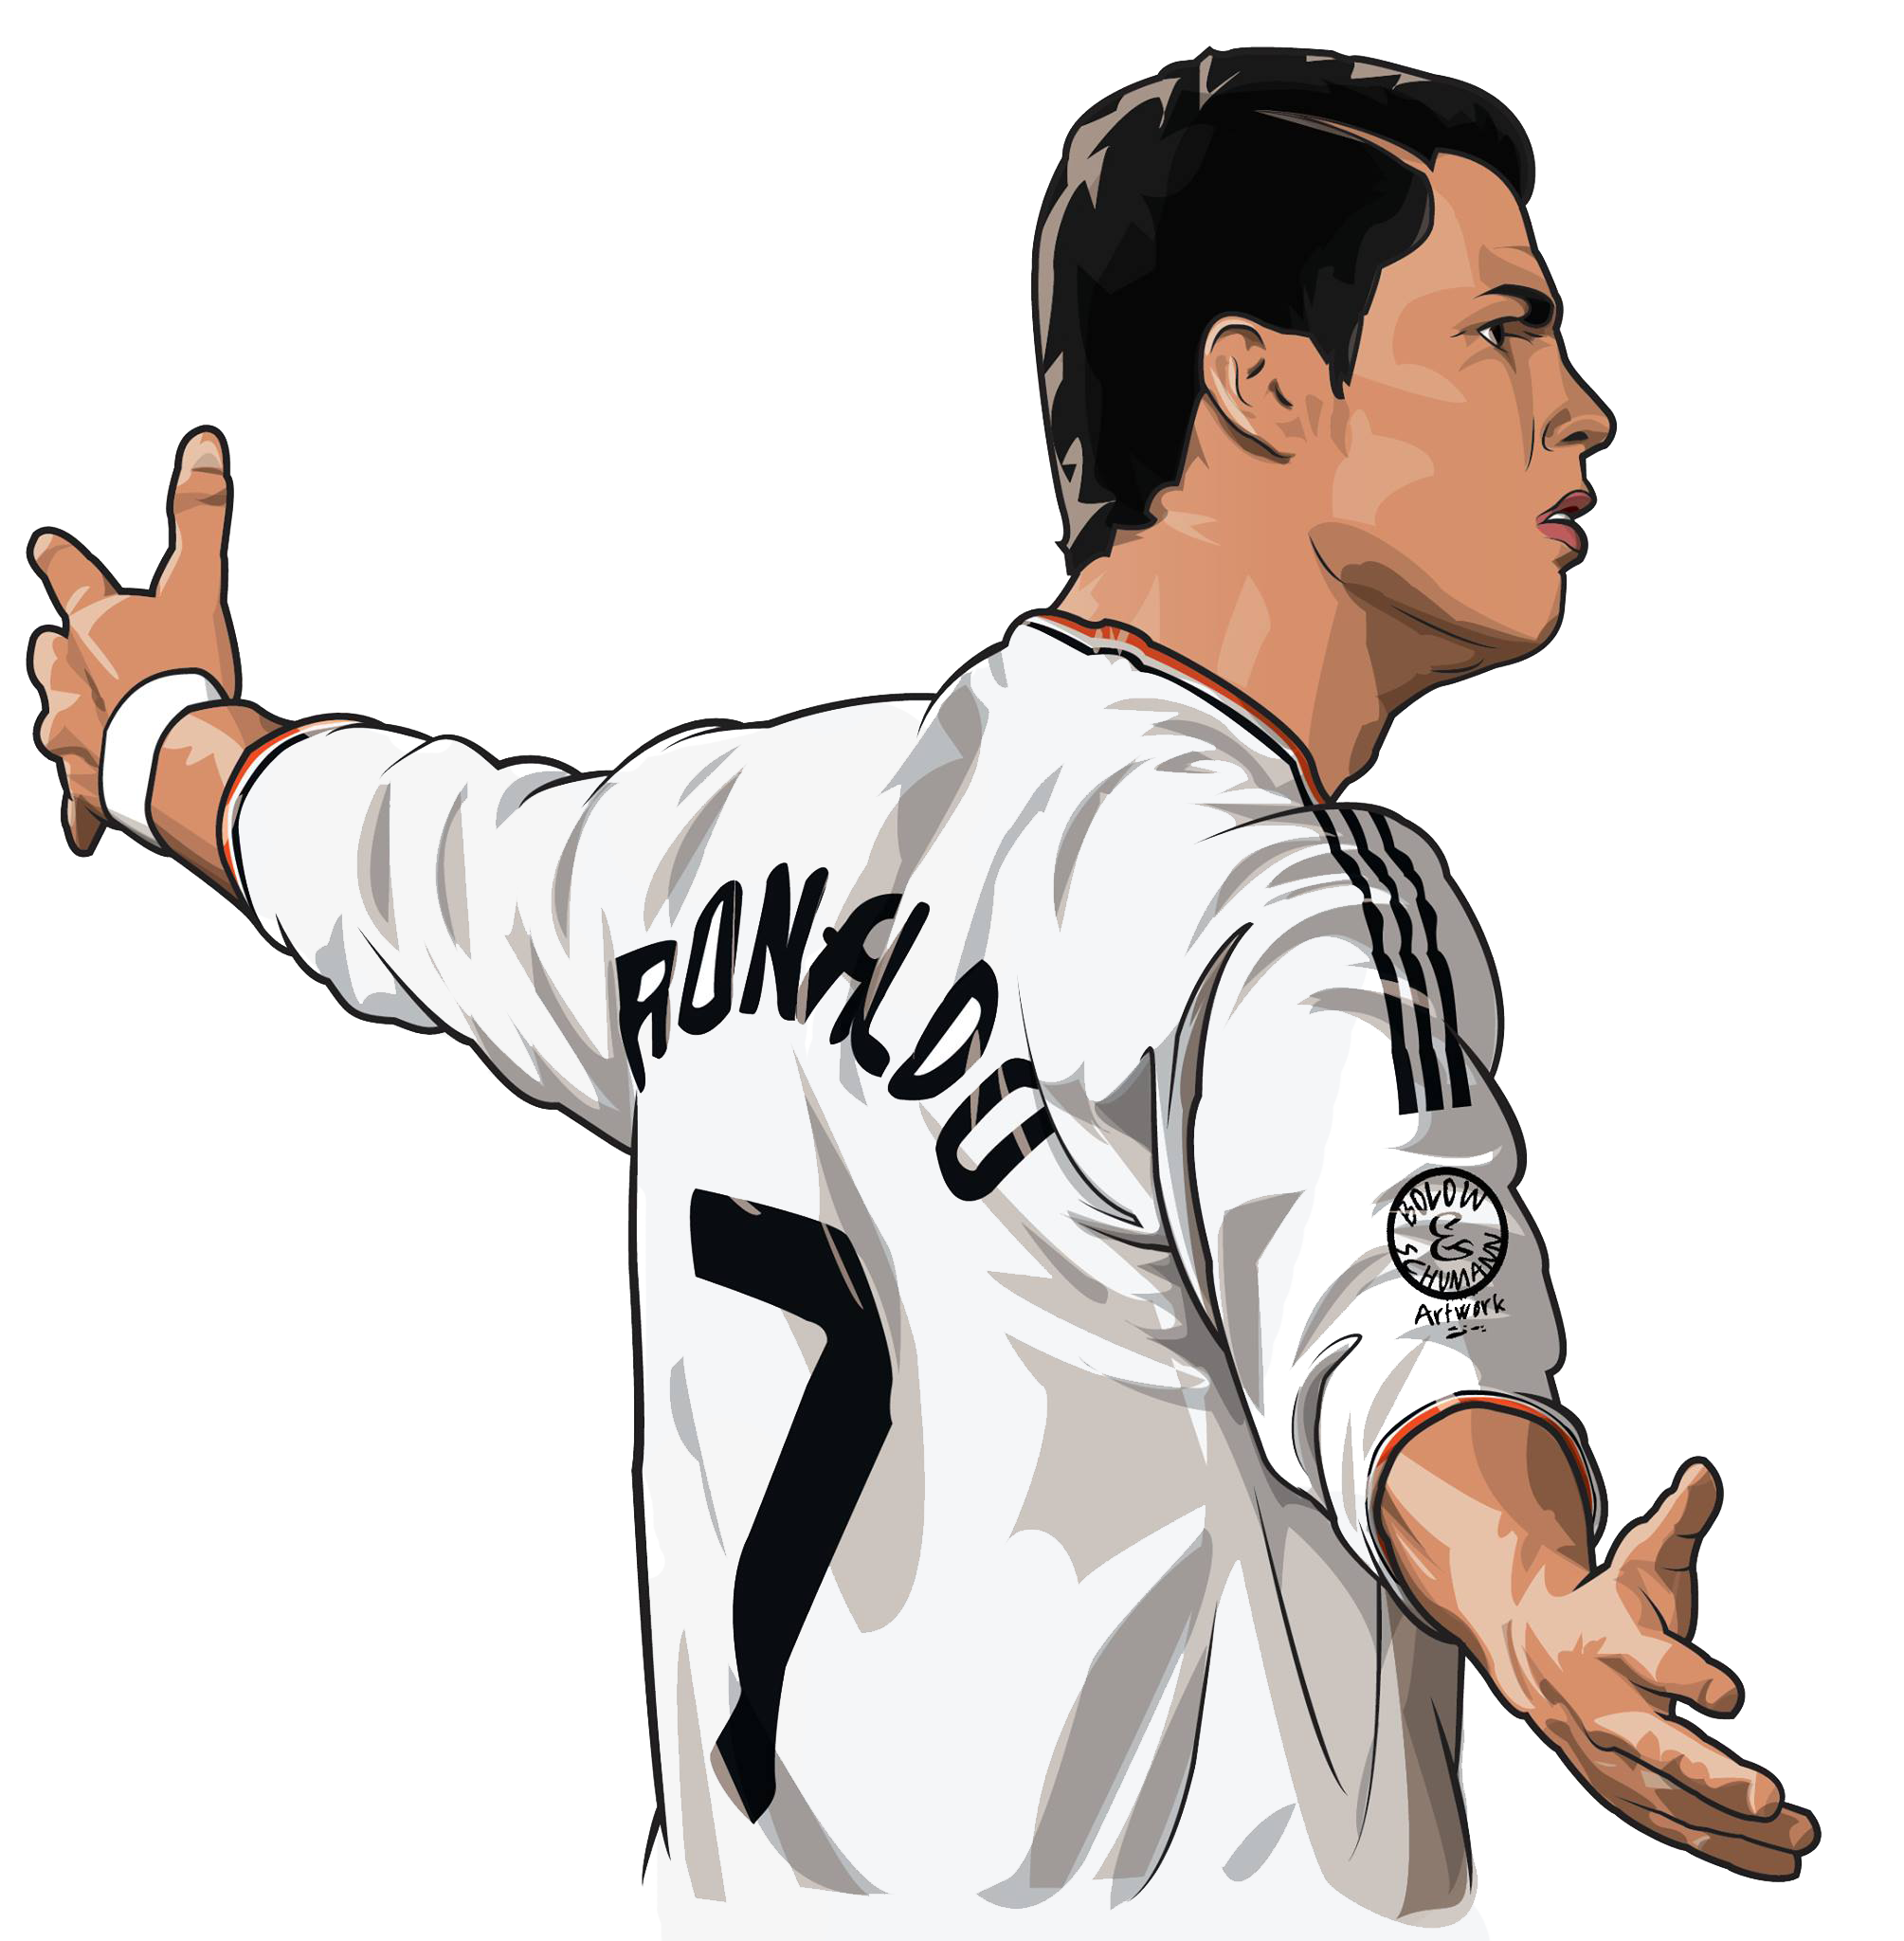 cr7 ronaldo cartoon png transparent